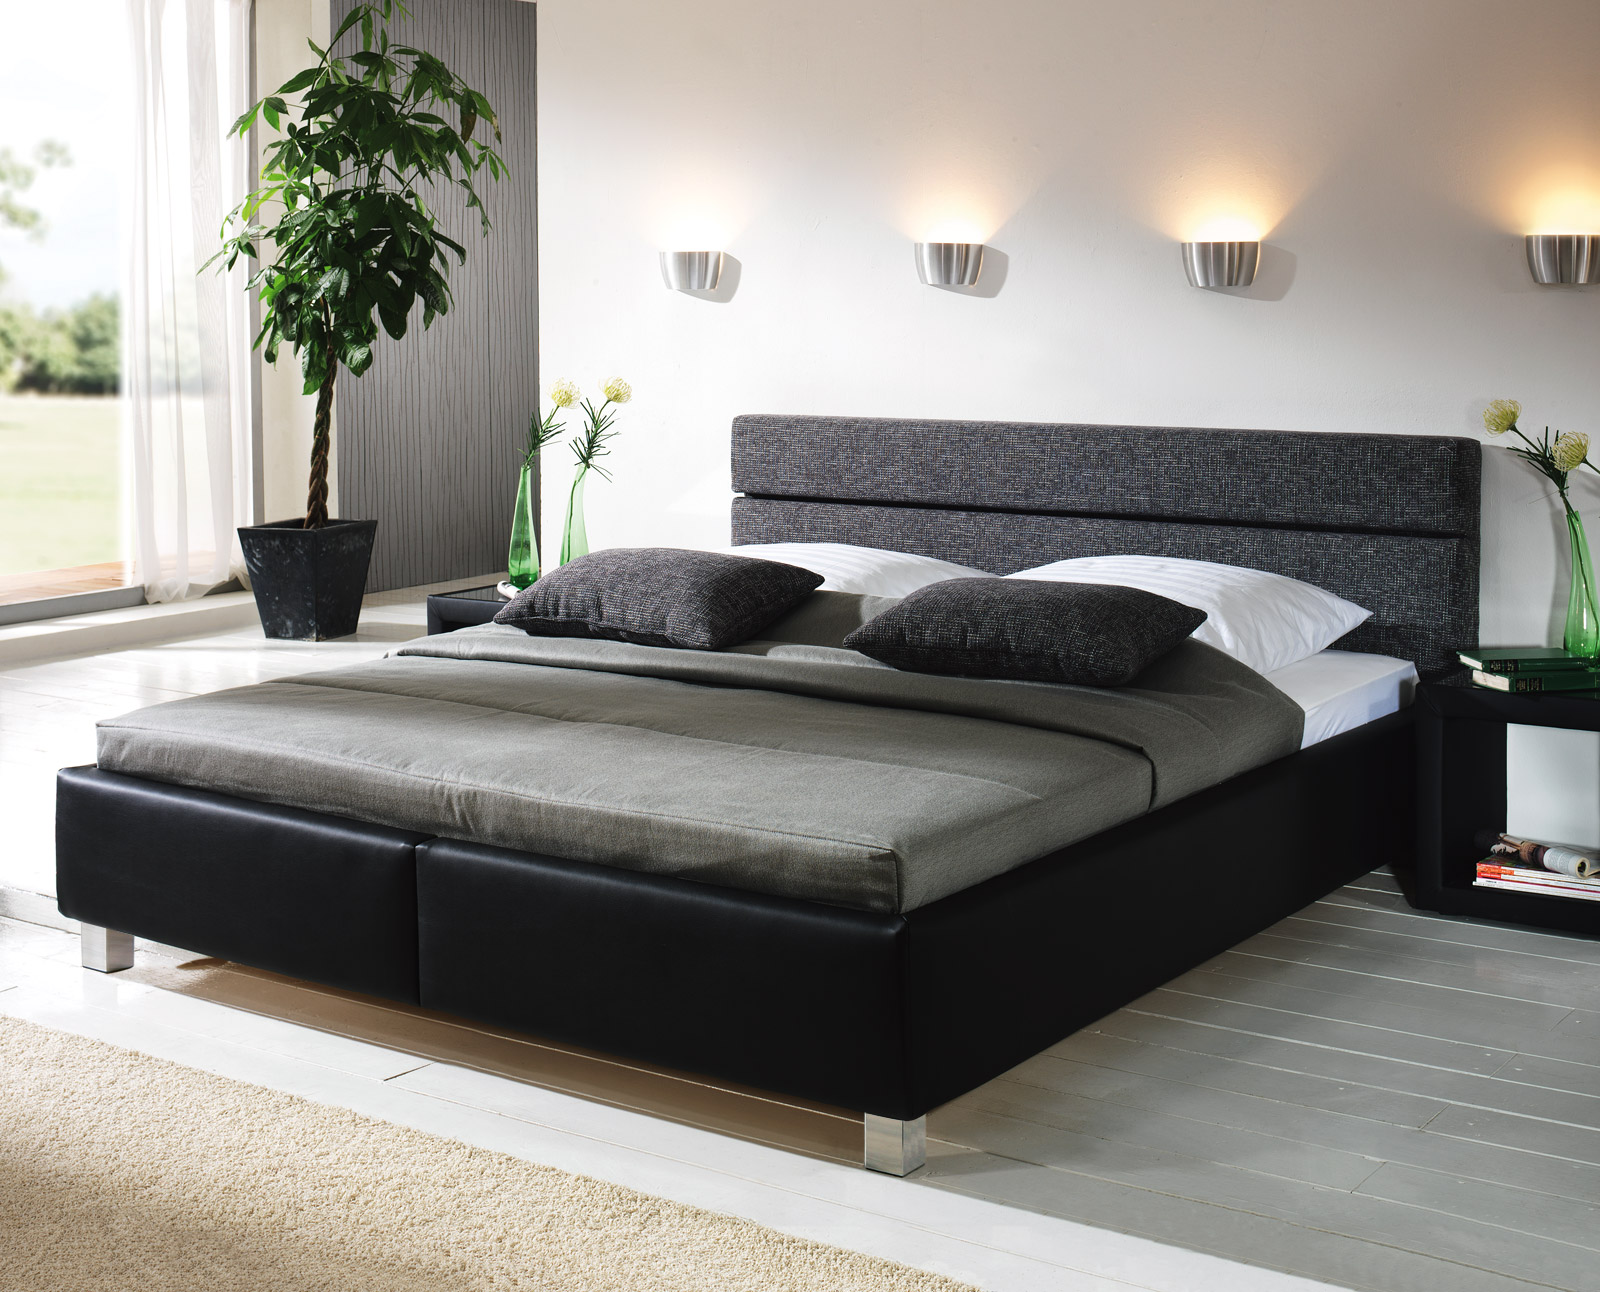 hochwertiges bett fur schlafzimmer qualitatsgarantie. Black Bedroom Furniture Sets. Home Design Ideas